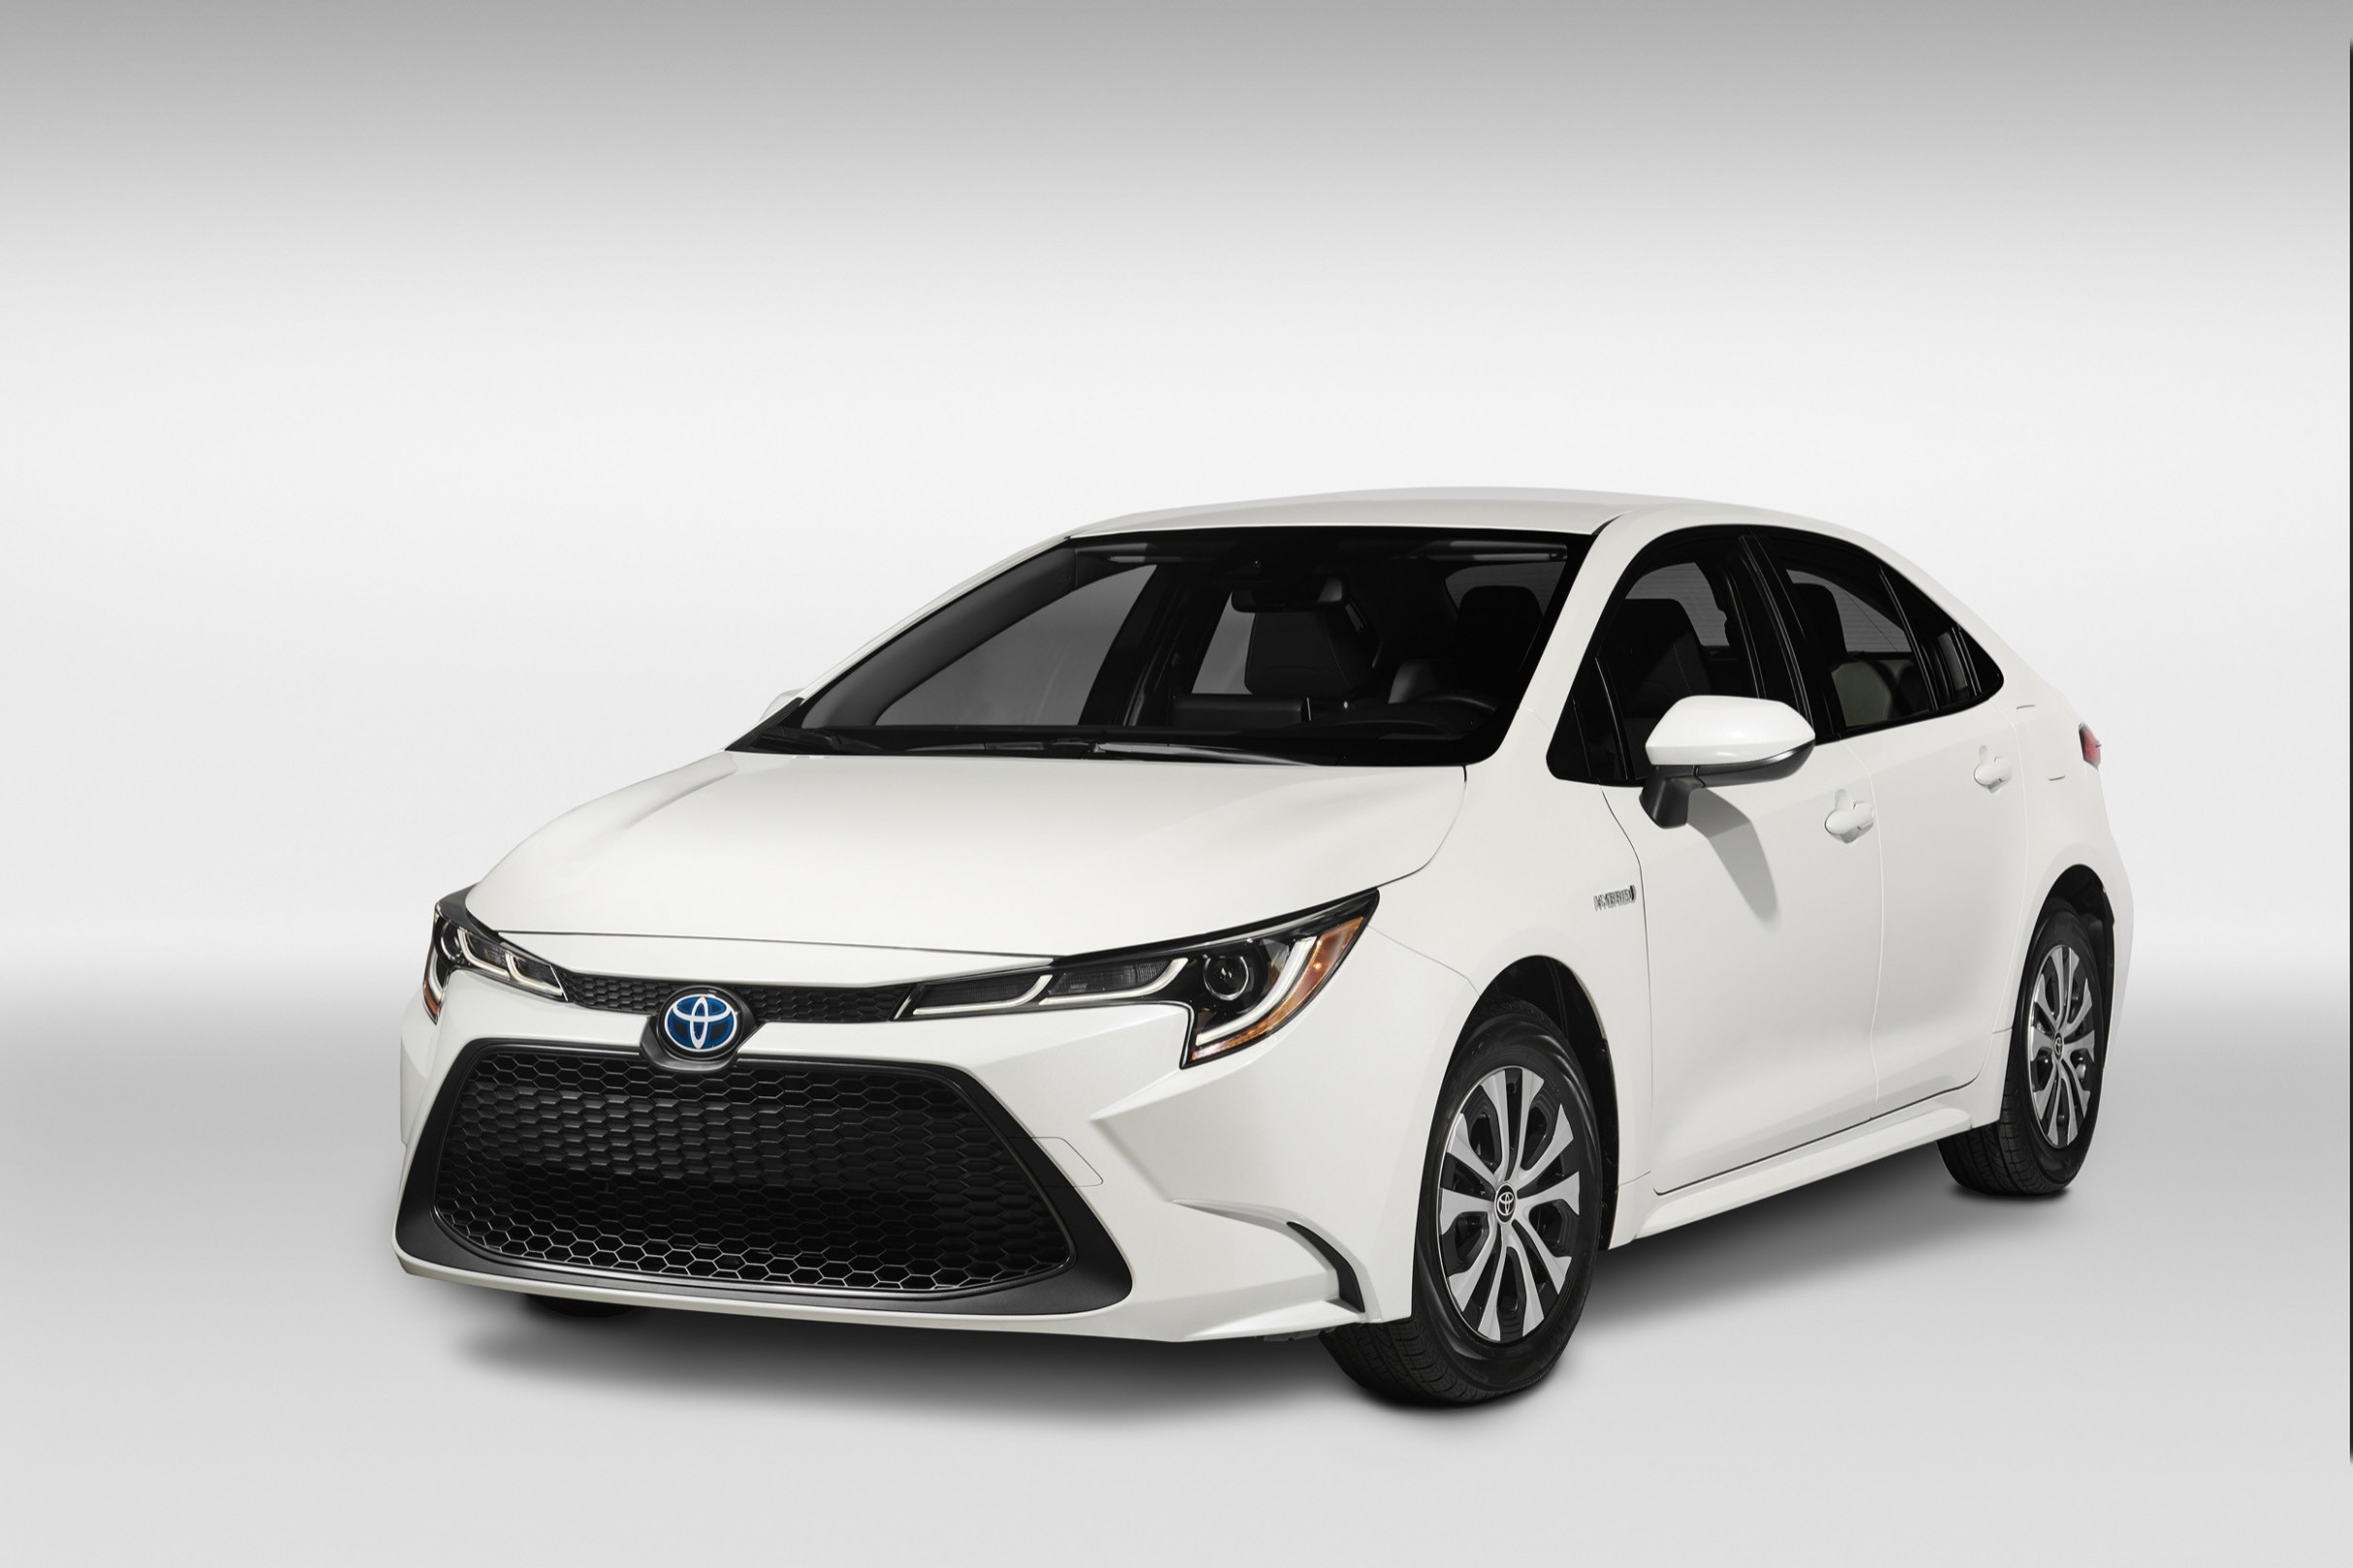 Redesign and Concept Toyota Zelas 2022